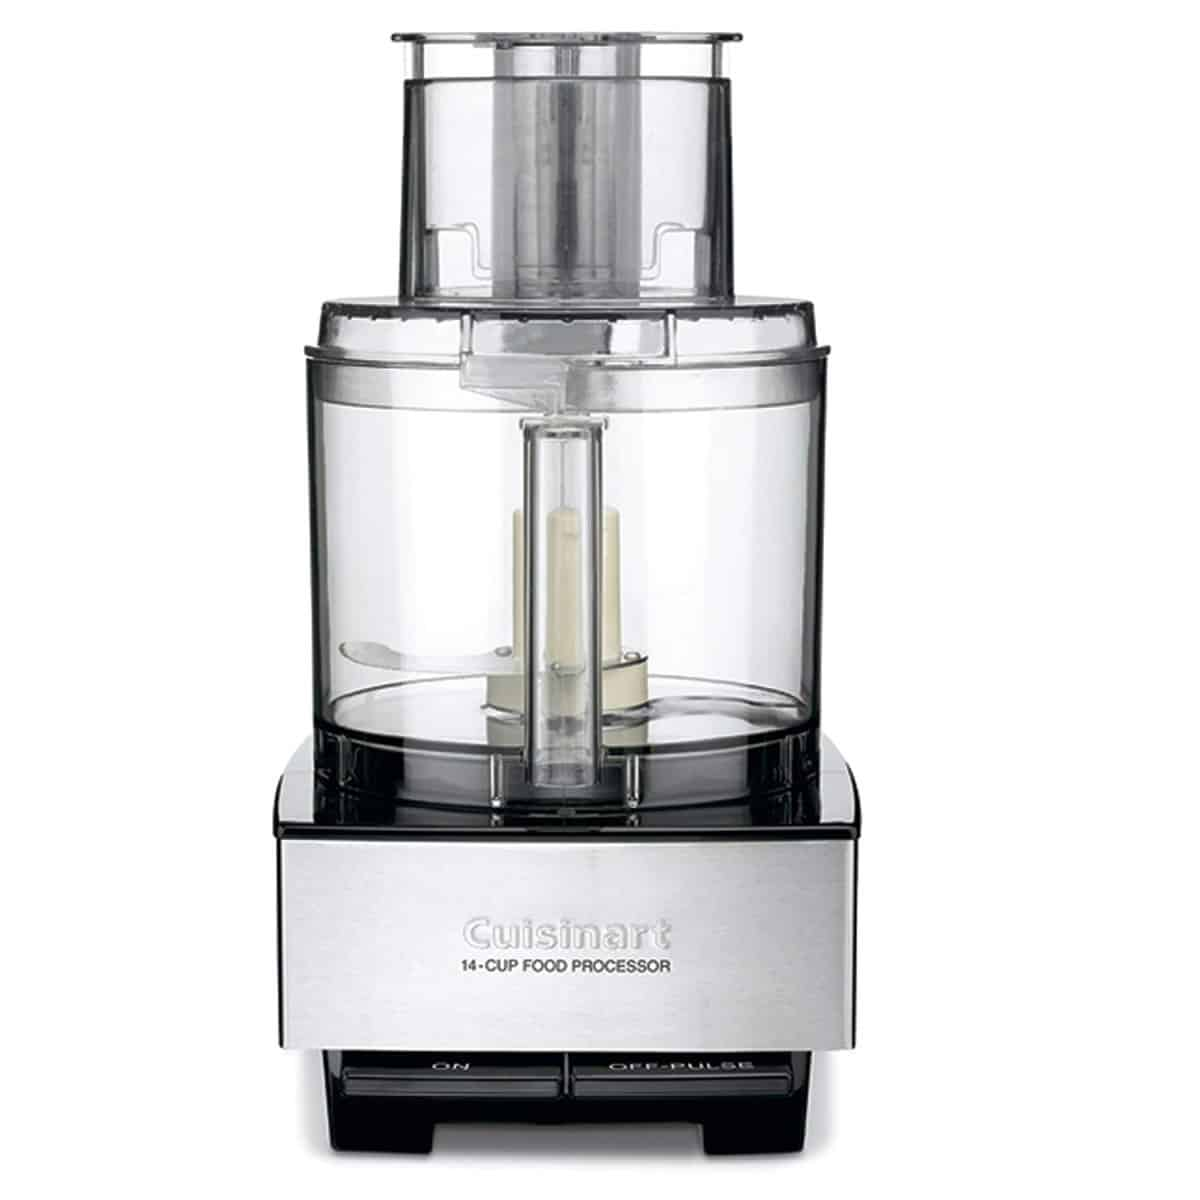 Cuisinart 14-Cup Food Processor | Hey Alexa, Get These 21 Kitchen Appliances On Amazon